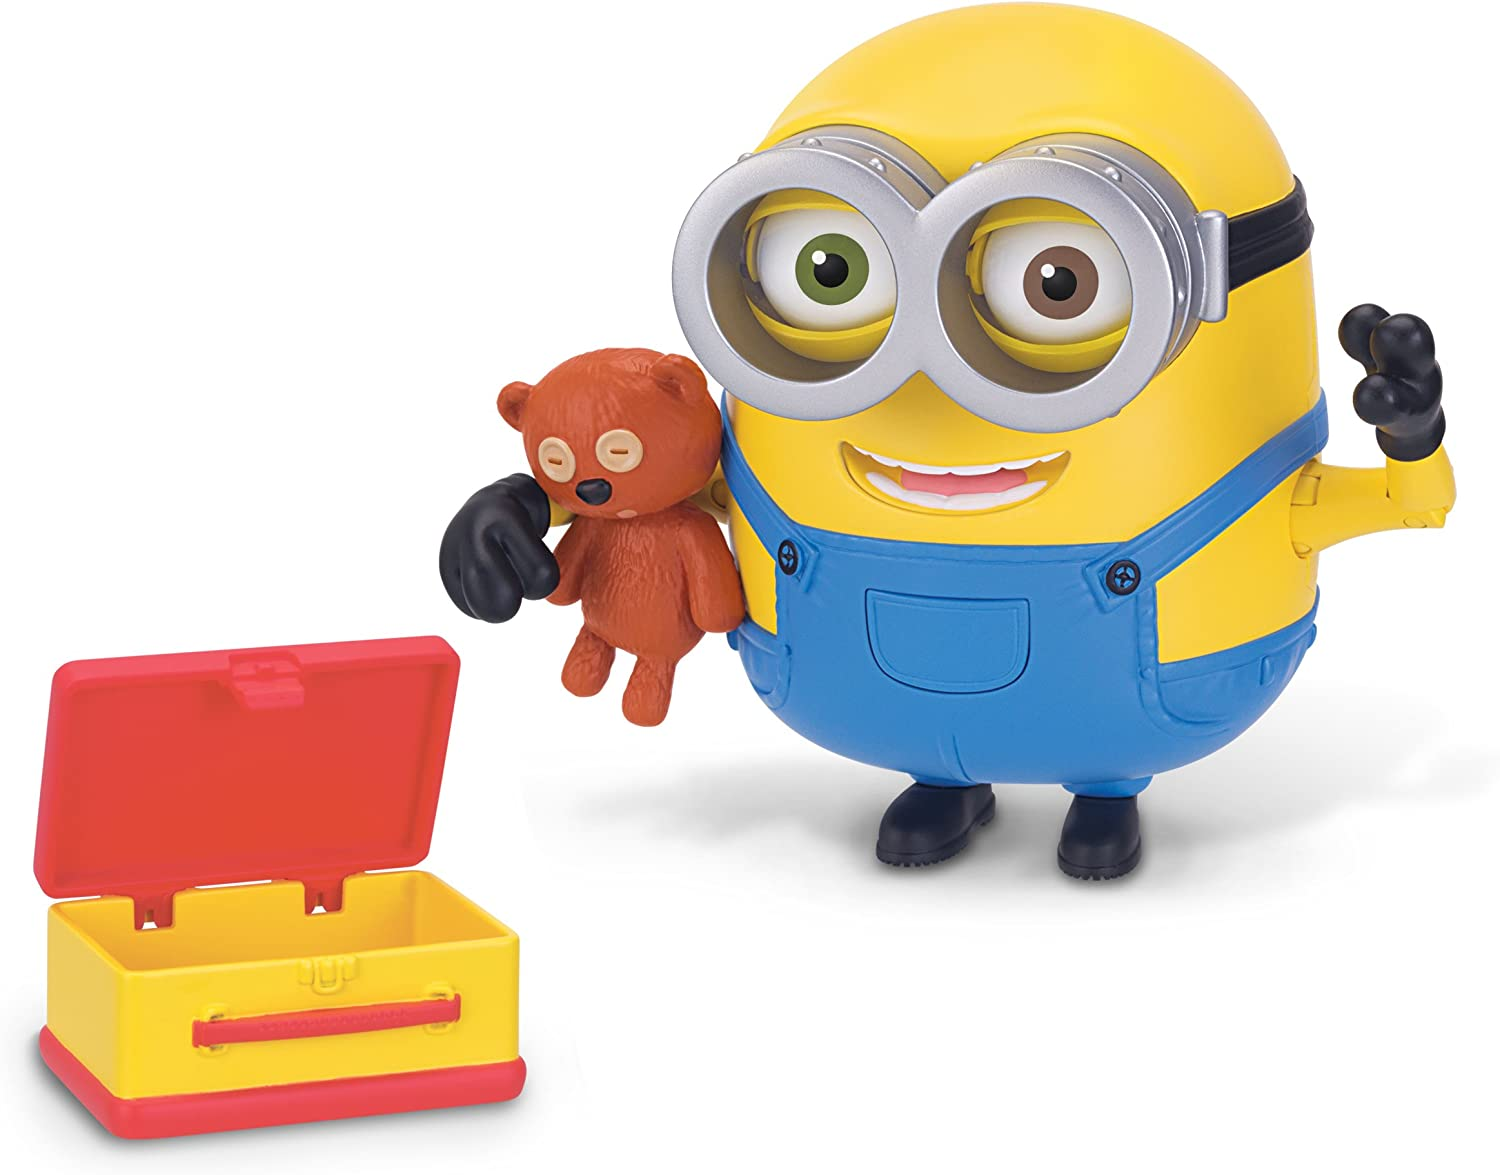 Despicable Me Minions Deluxe Action Figure – Bob with Teddy Bear: Amazon.es: Juguetes y juegos